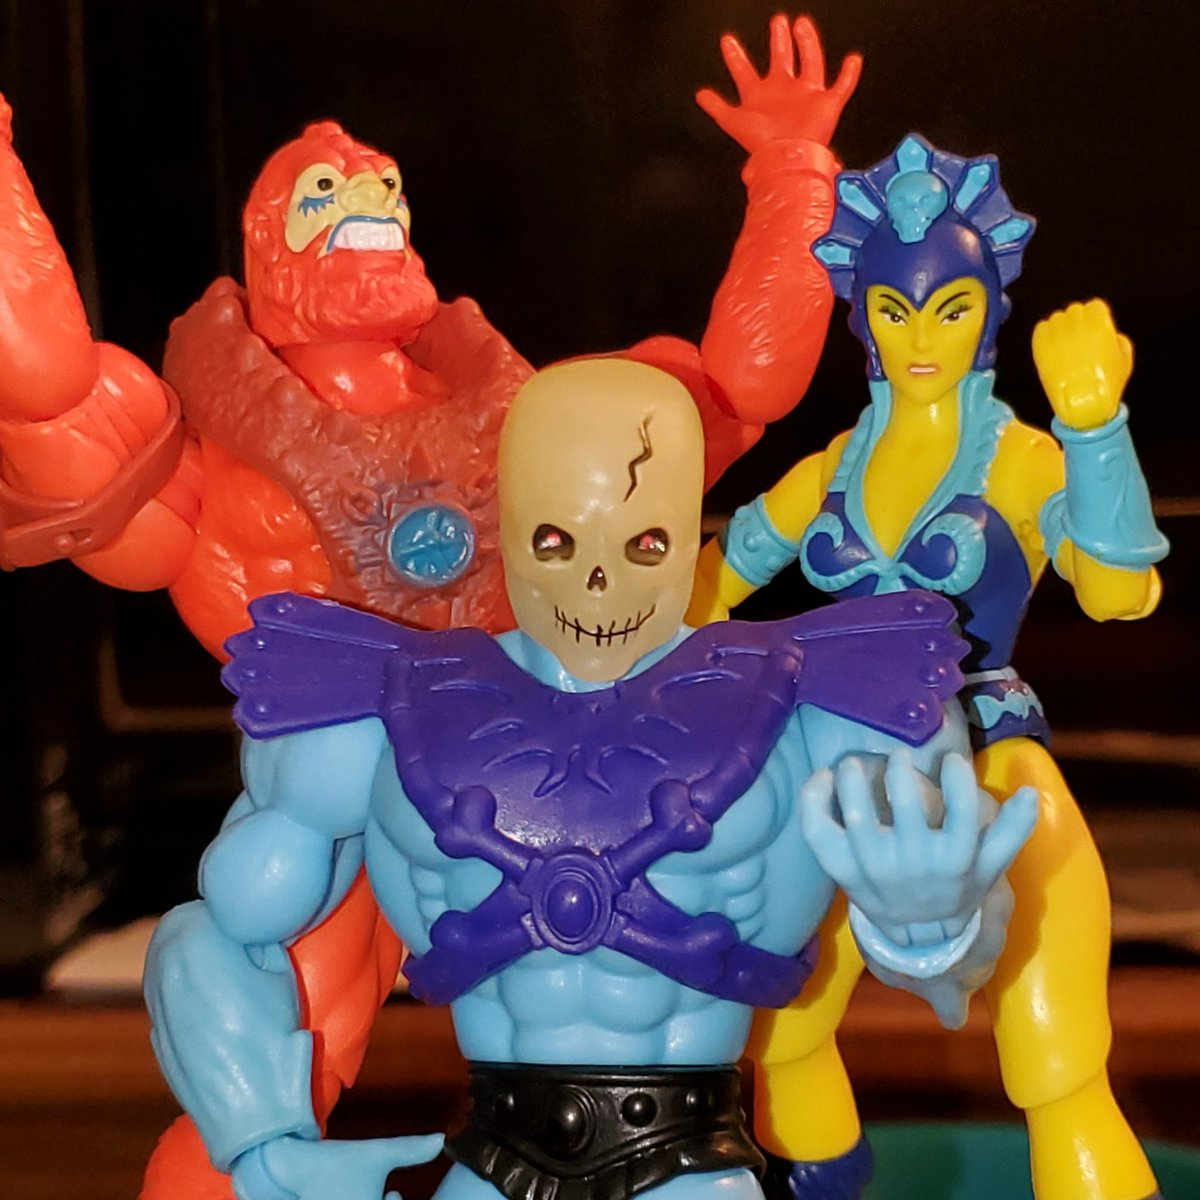 Took me WAY too long to get this pose together! But gonna be using it as reference for a group shot of some of my original baddies: The Mythos Men from Ramona & Clay. We'll see what happens tomorrow! #motu #motuorigins #toys #toyphotography